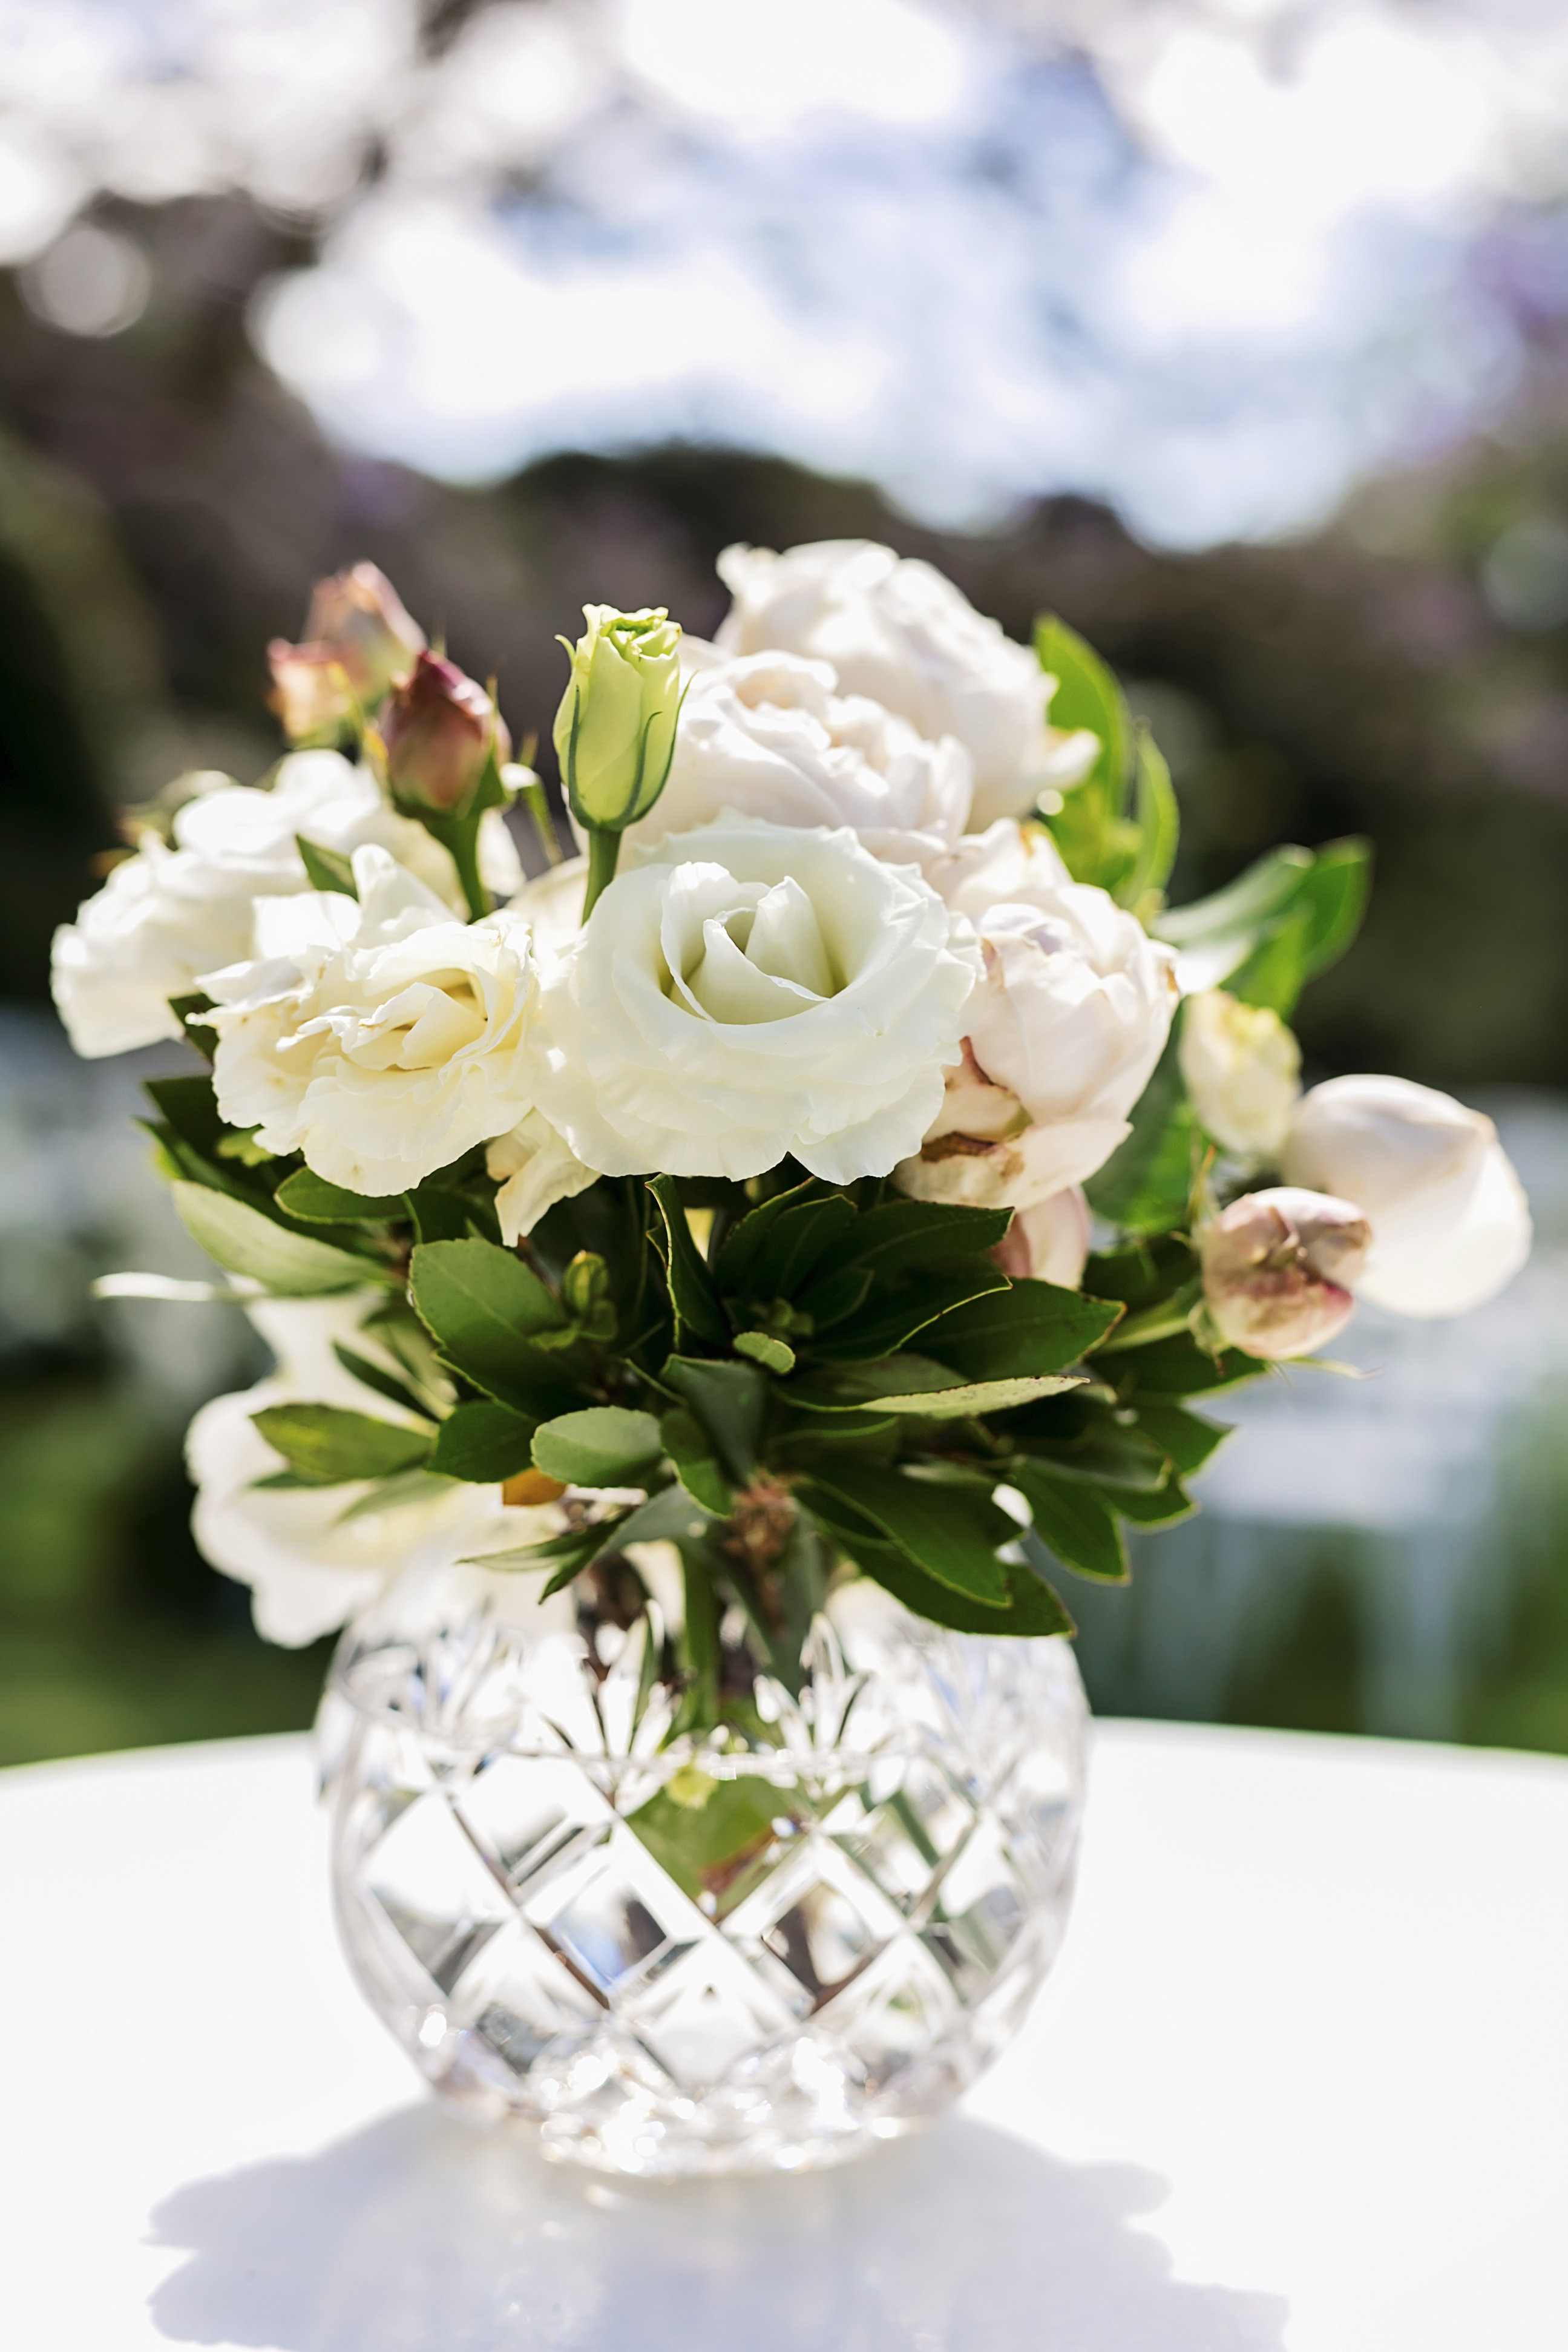 Crystal vase design with roses and lisianthus